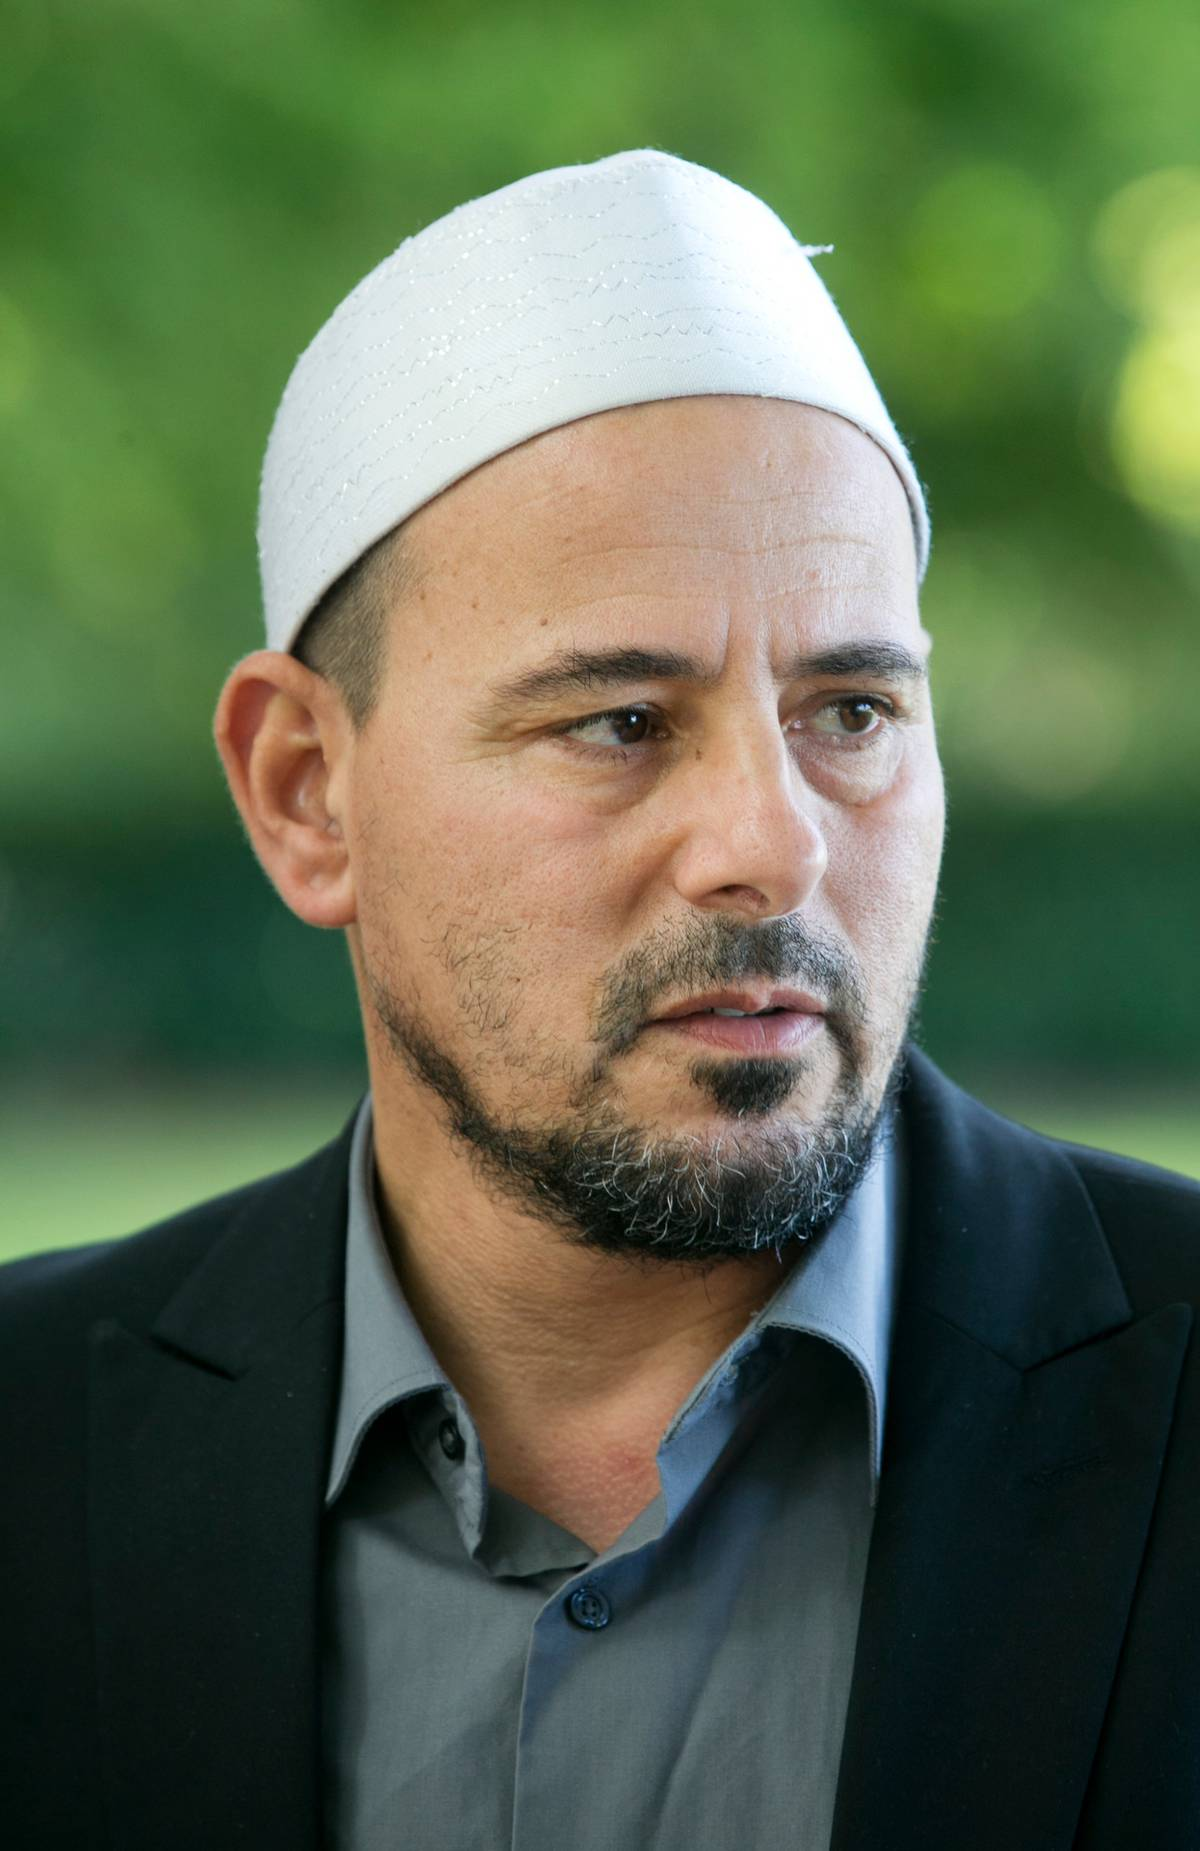 Christchurch mosque to host Friday prayer a week after deadly terrorist attacks left 50 people dead